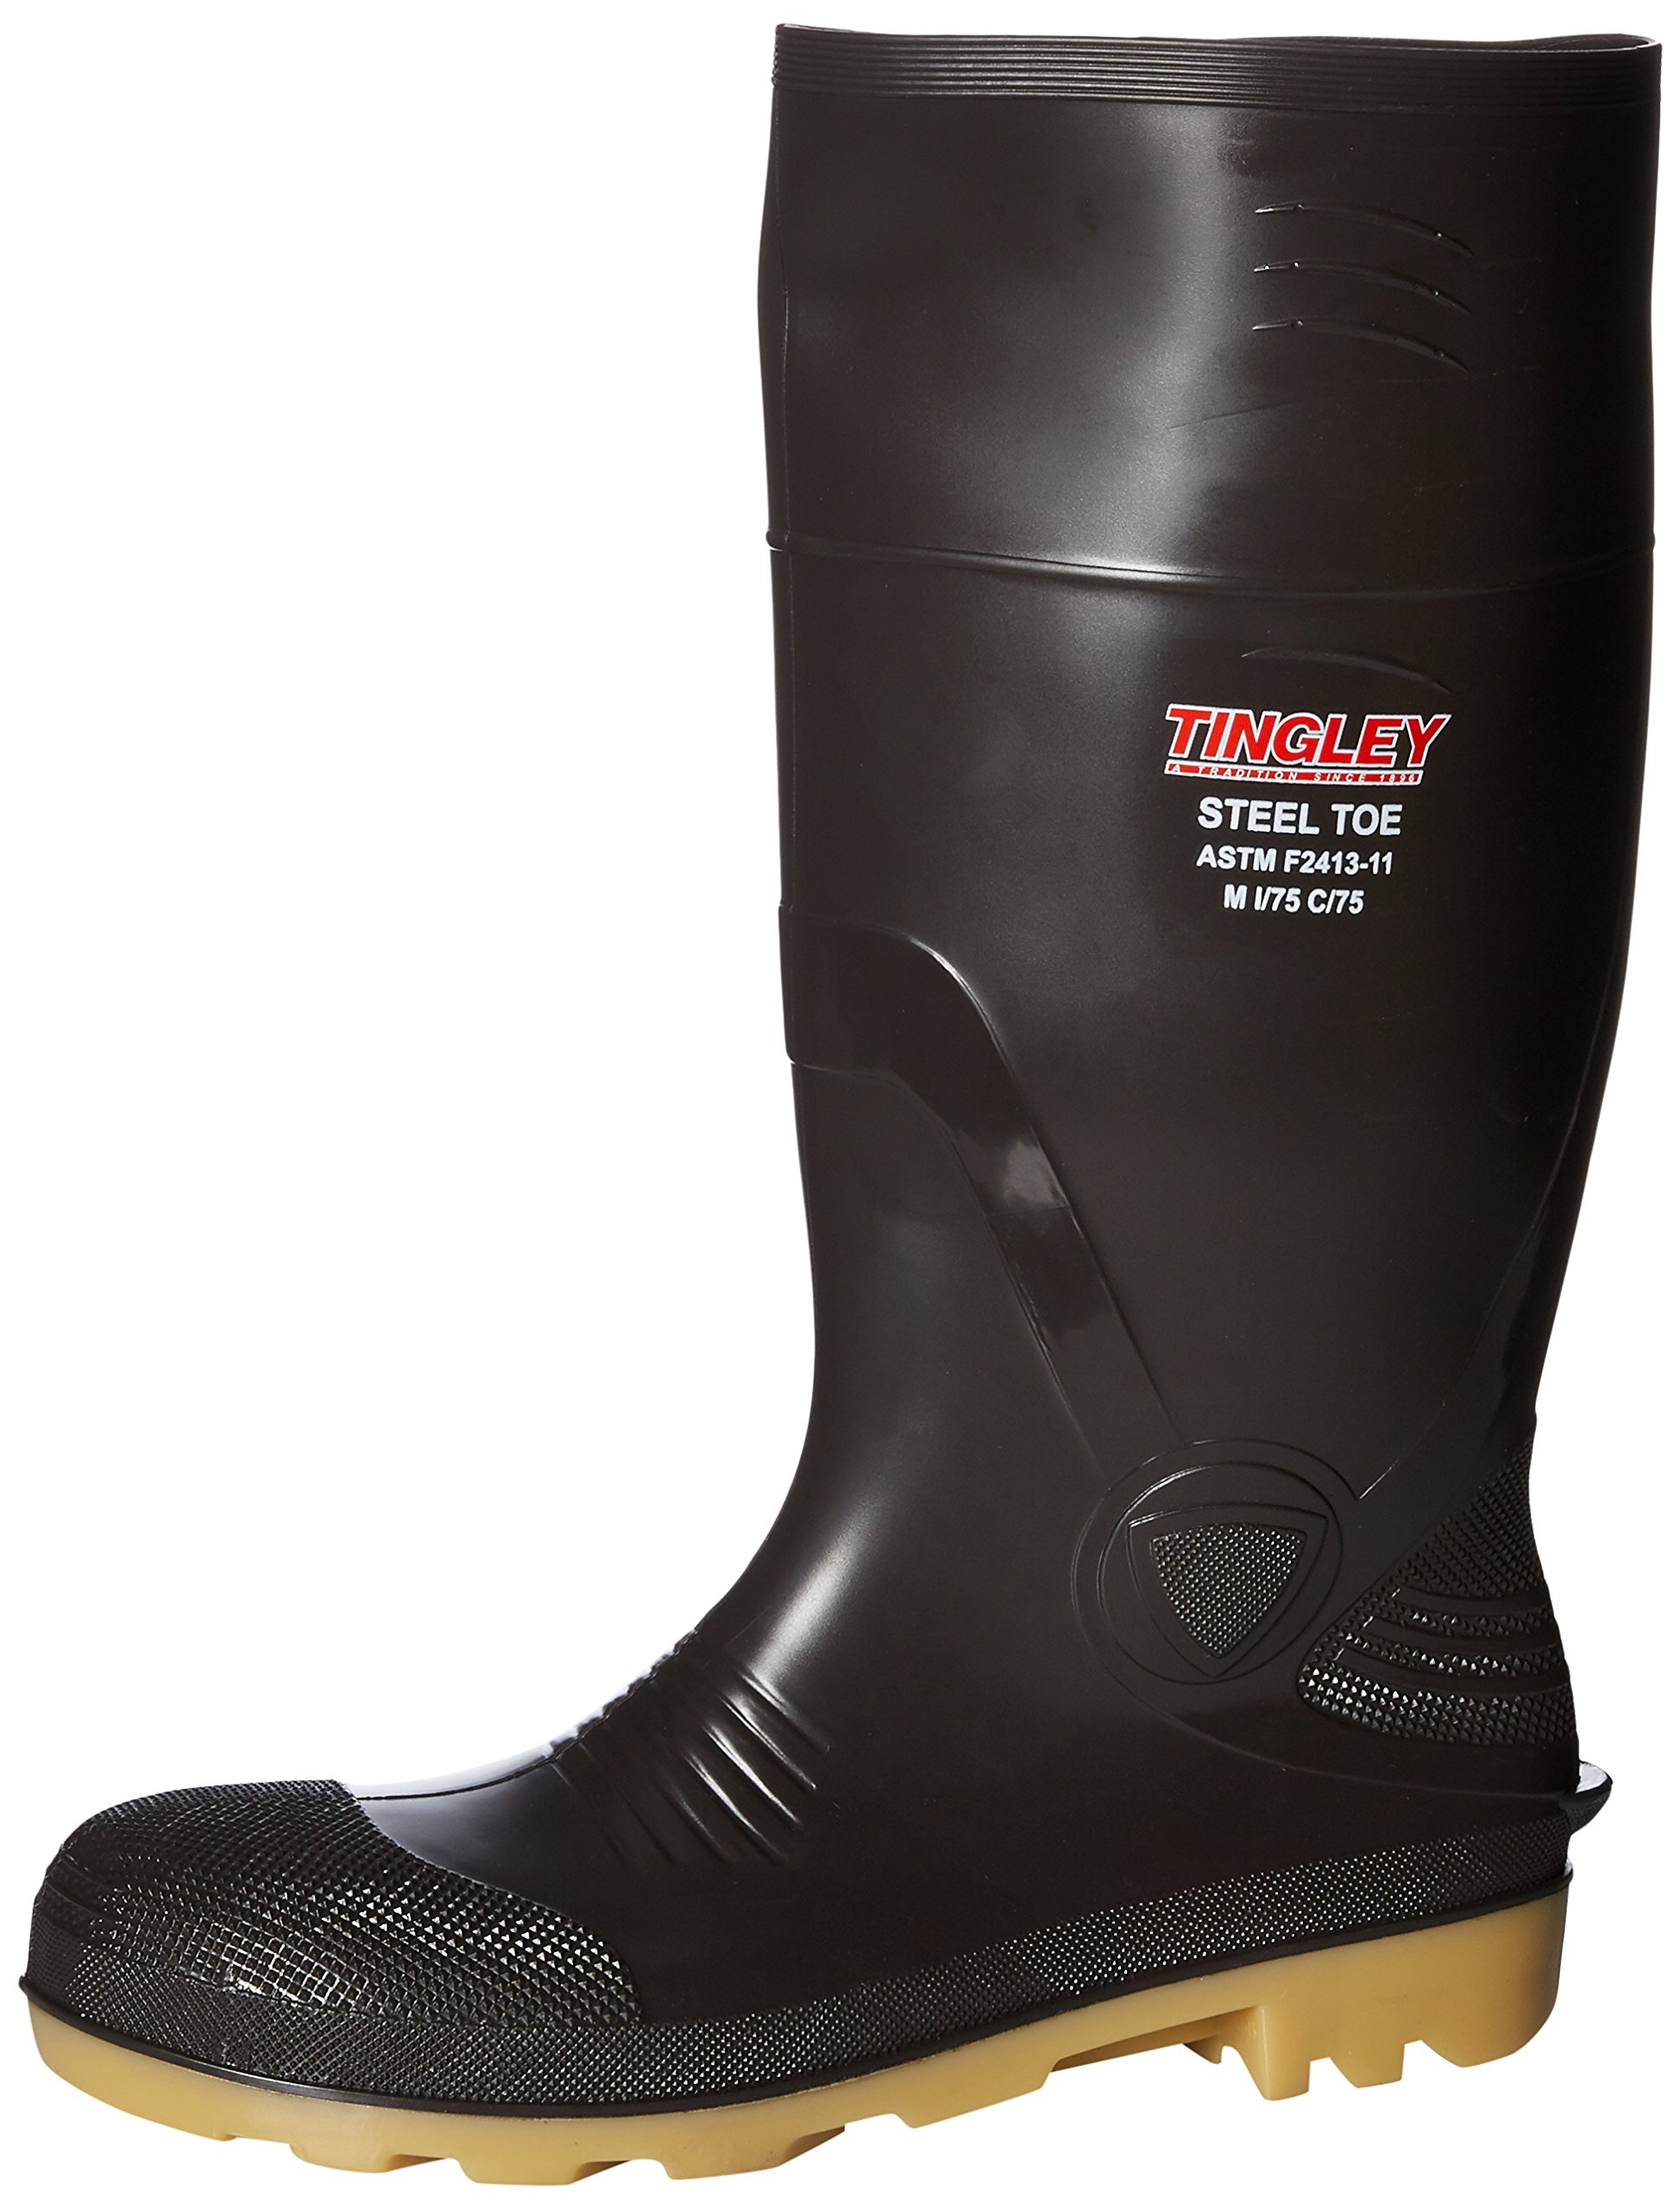 Tingley Rubber 51244 15-Inch Steel Toe Cleated Knee Boot, Size 10, Brown